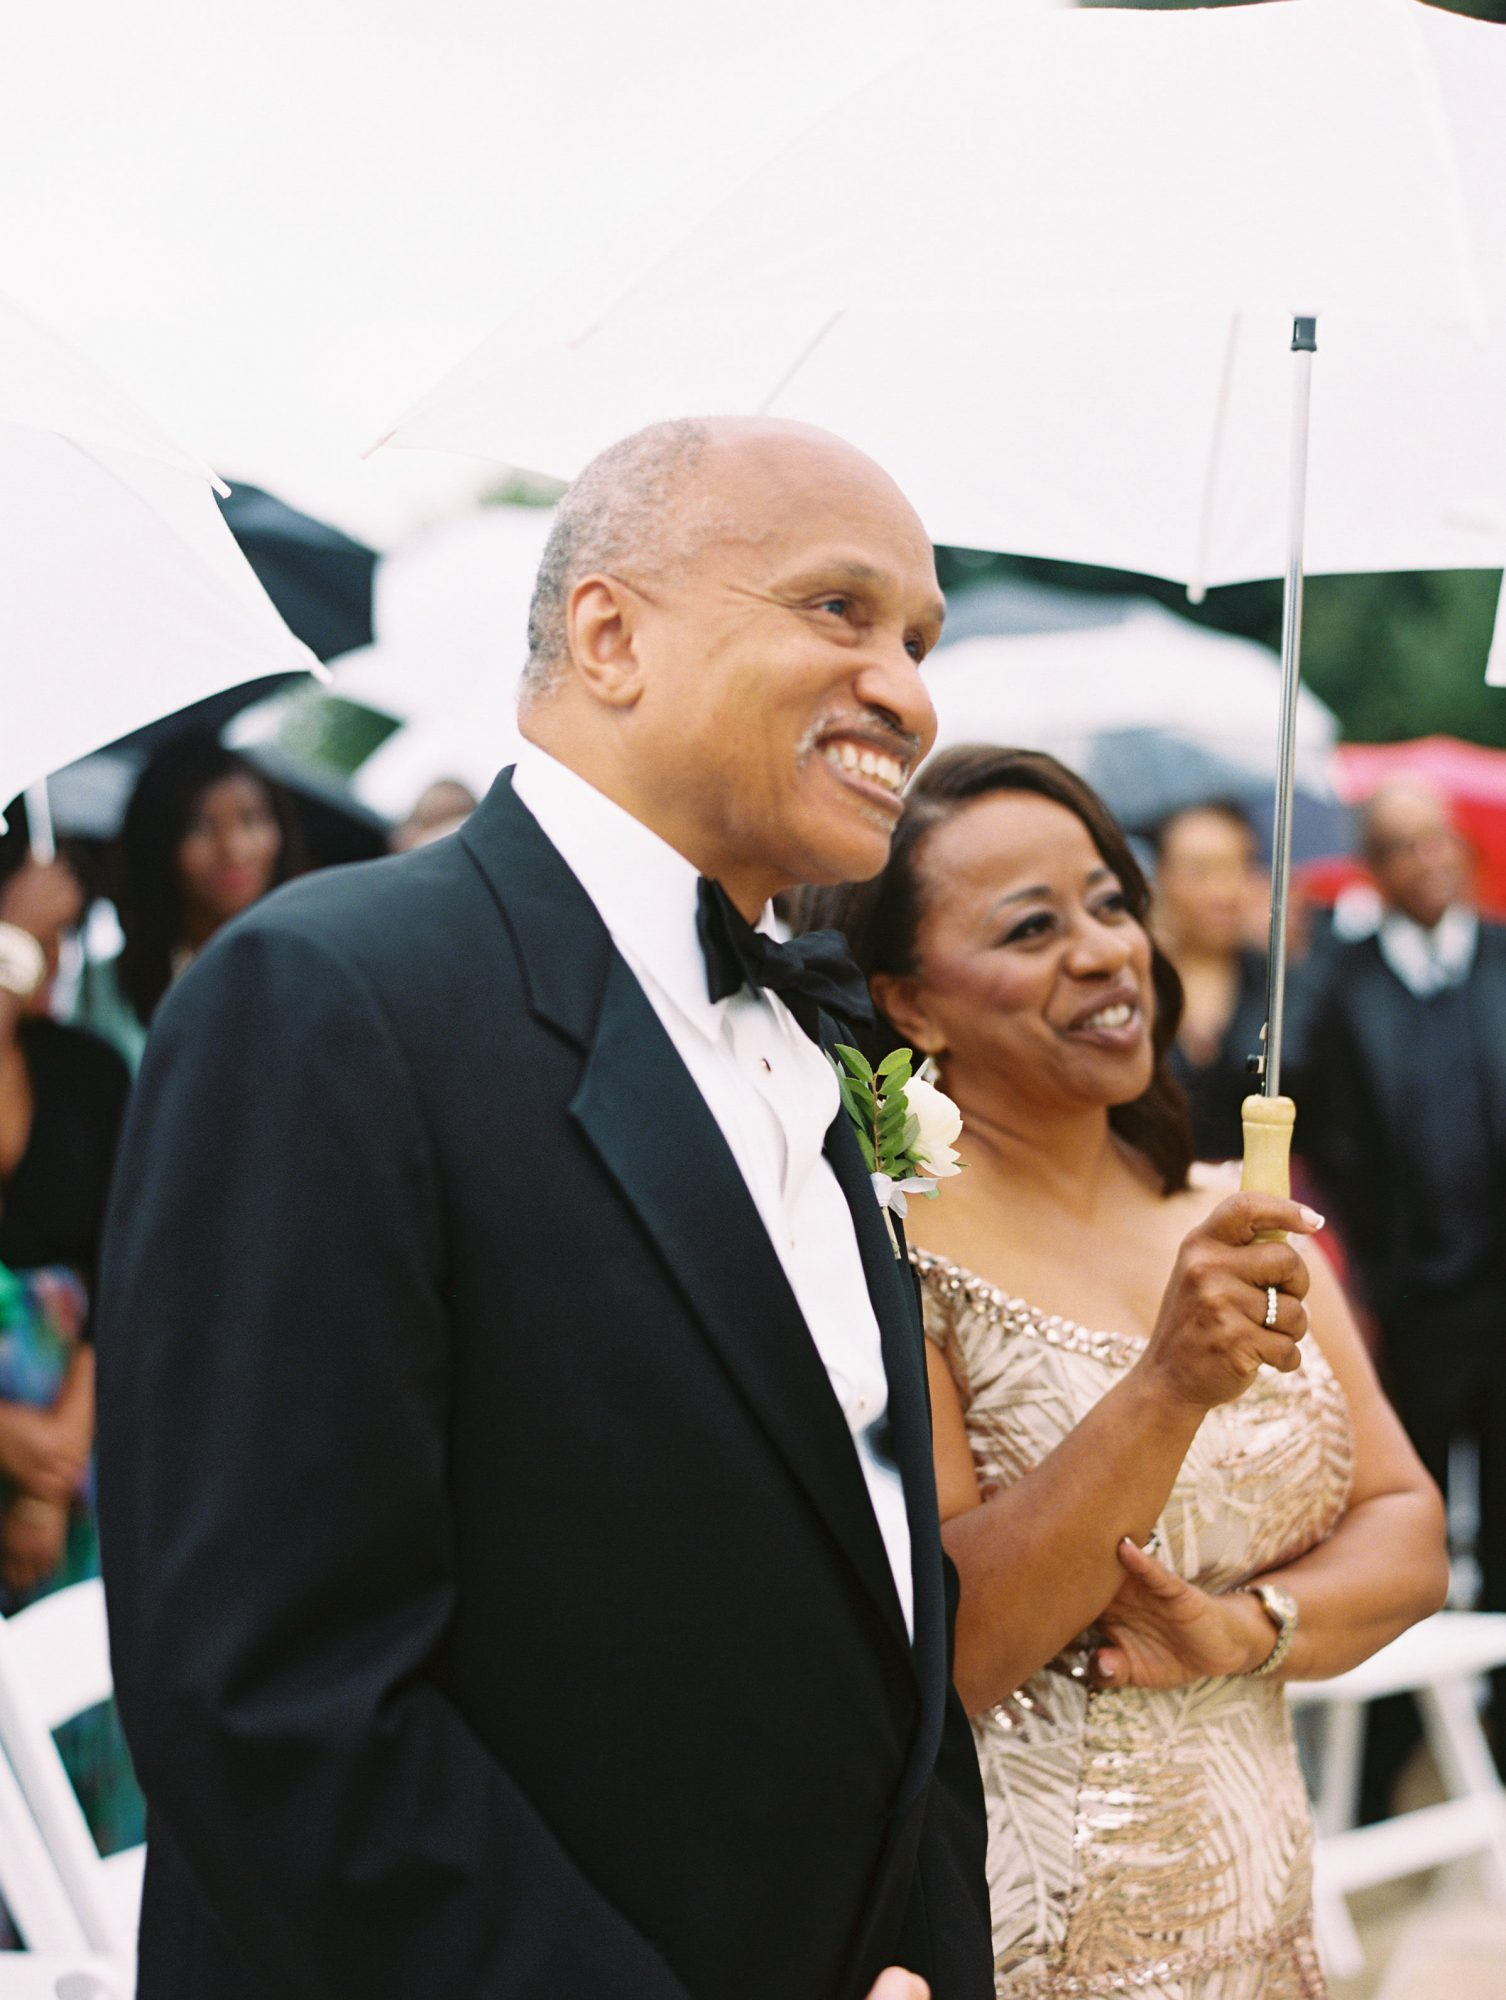 melissa justen wedding ceremony parents with umbrella